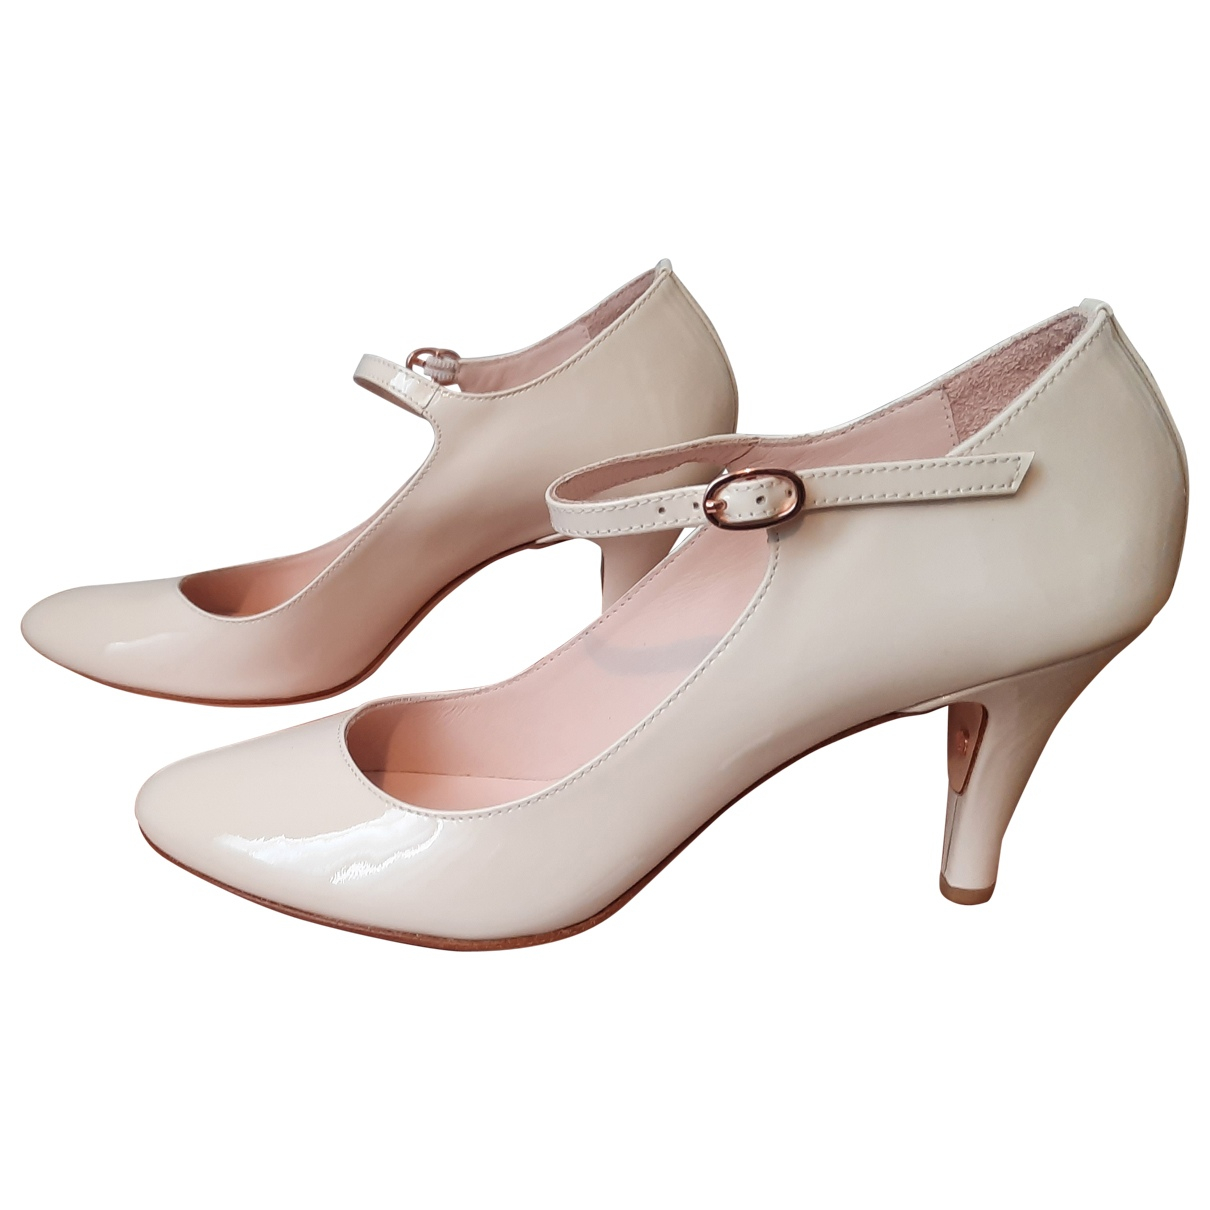 Repetto \N Pumps in  Weiss Lackleder